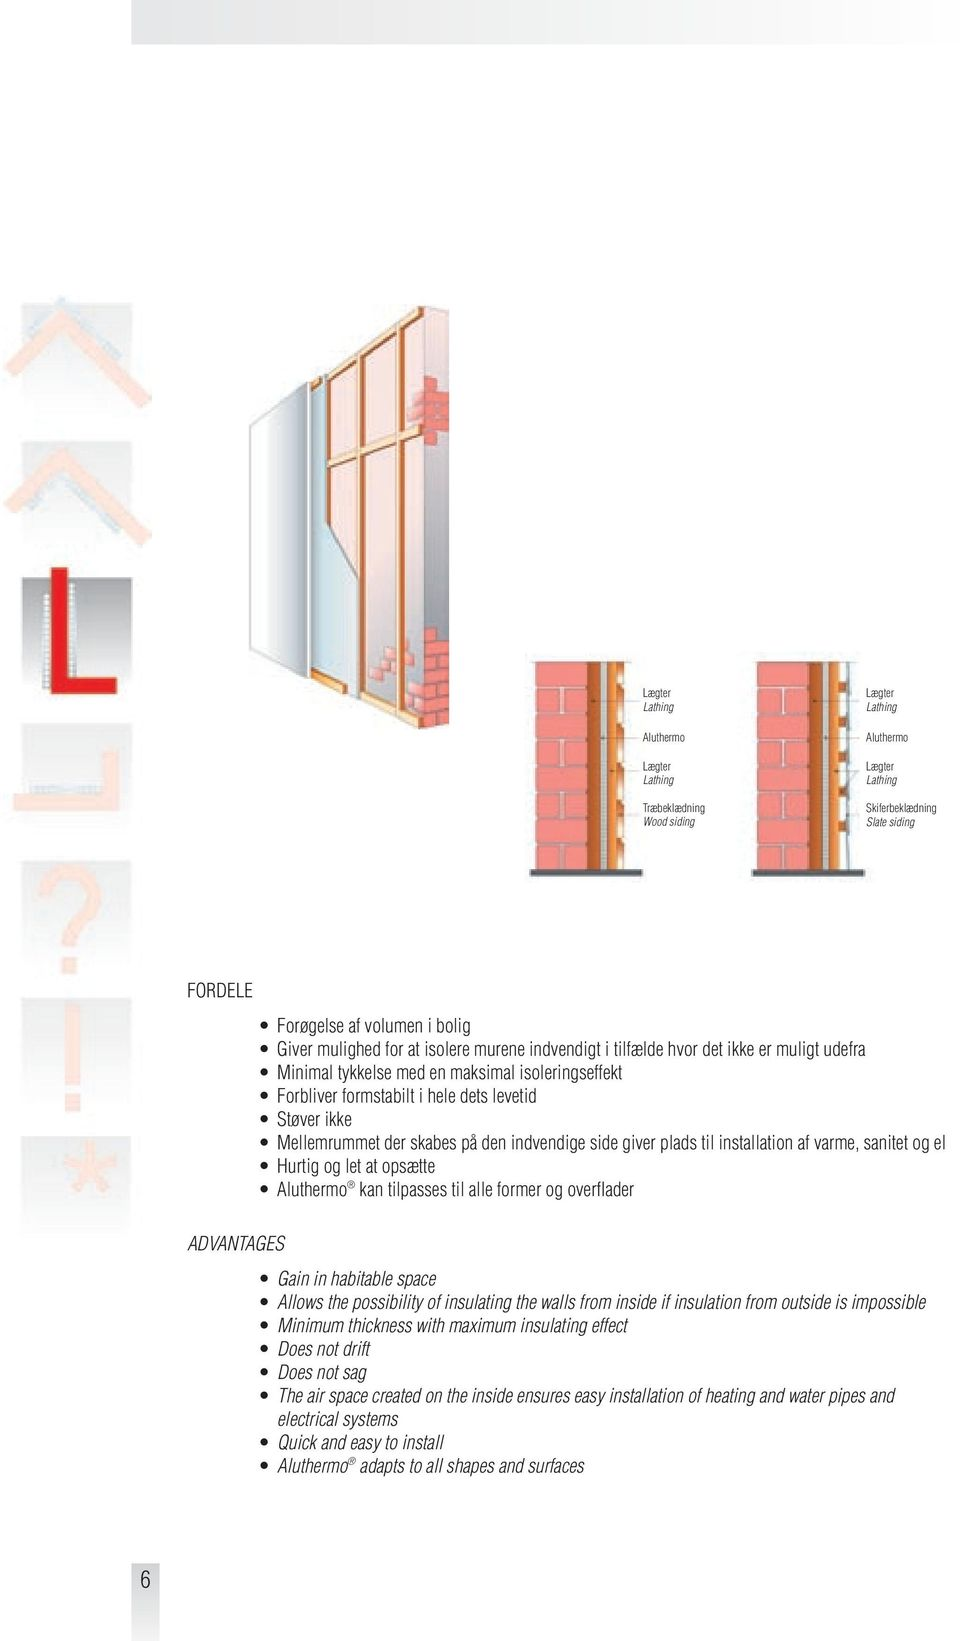 plads til installation af varme, sanitet og el Hurtig og let at opsætte Aluthermo kan tilpasses til alle former og overflader Gain in habitable space Allows the possibility of insulating the walls